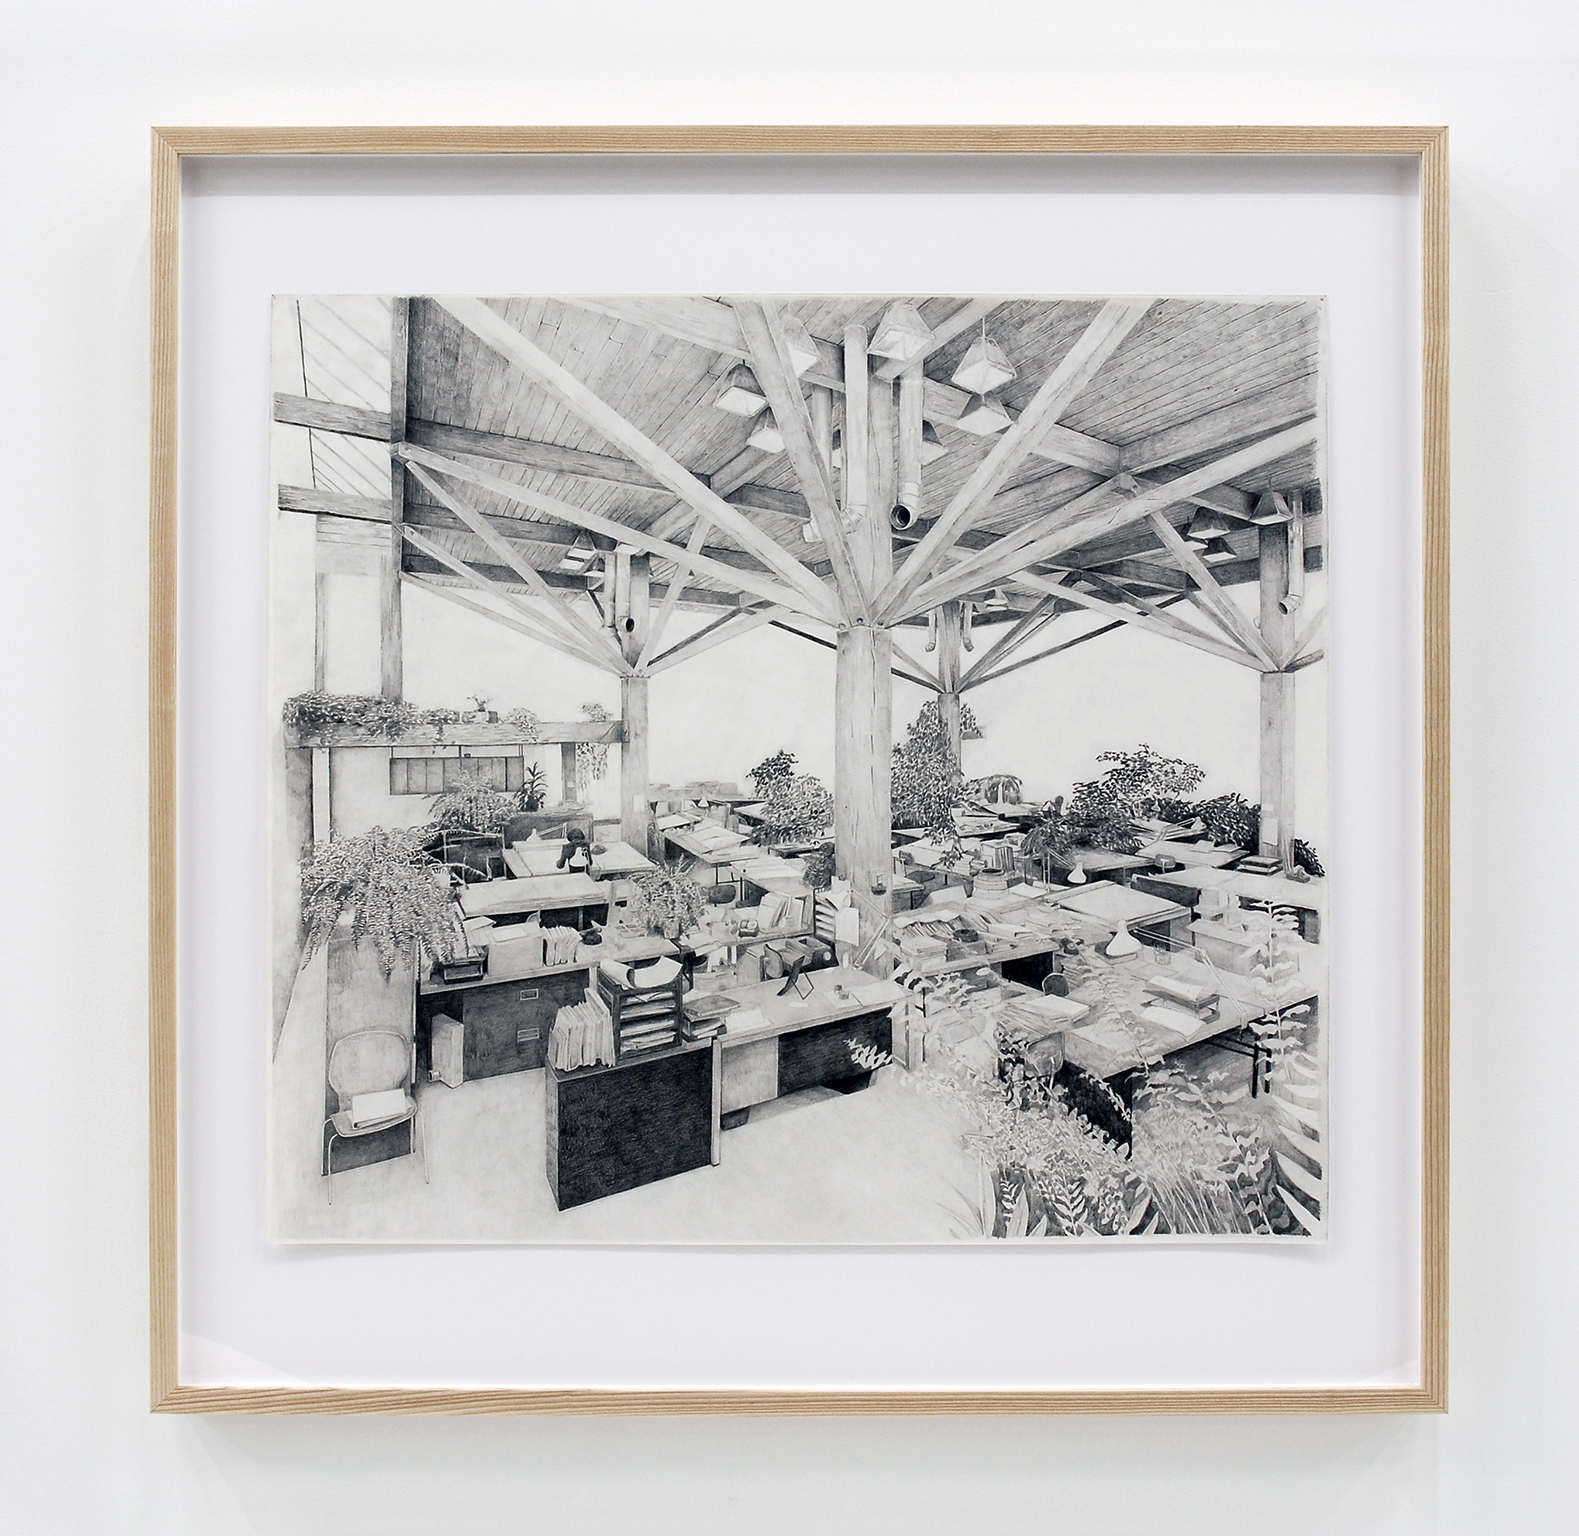 Alex Morrison, The Poetics of Grey (No. 9), 2007, graphite on paper, 39 x 40 in. (100 x 100 cm) by